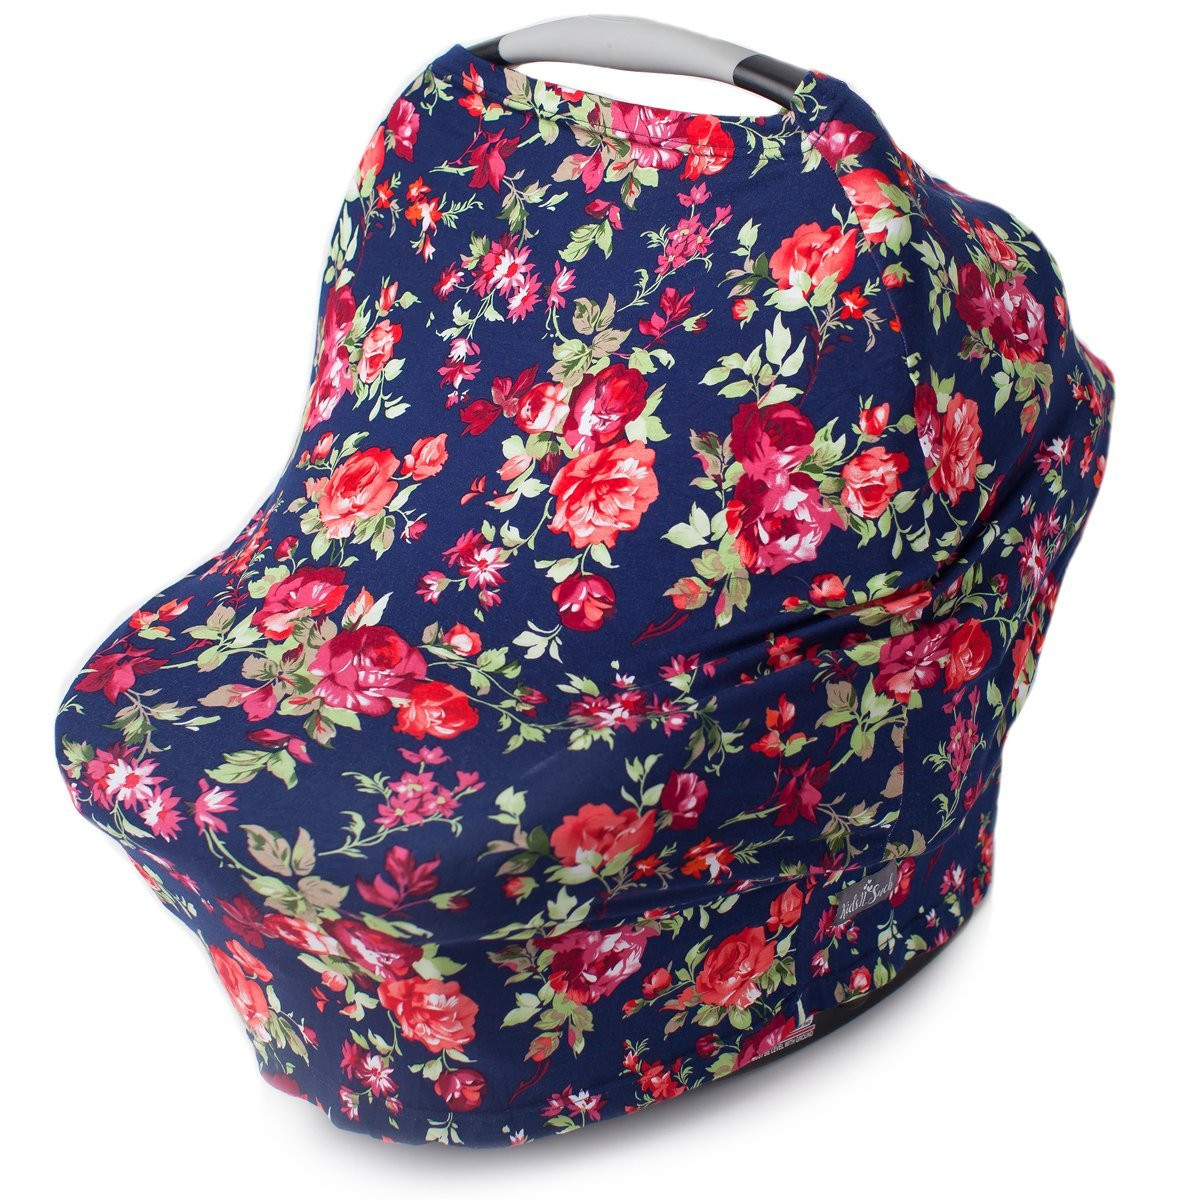 Stupendous Nursing Cover Car Seat Canopy Shopping Cart High Chair Stroller And Carseat Covers For Girls Best Stretchy Infinity Scarf And Shawl Multi Use Inzonedesignstudio Interior Chair Design Inzonedesignstudiocom